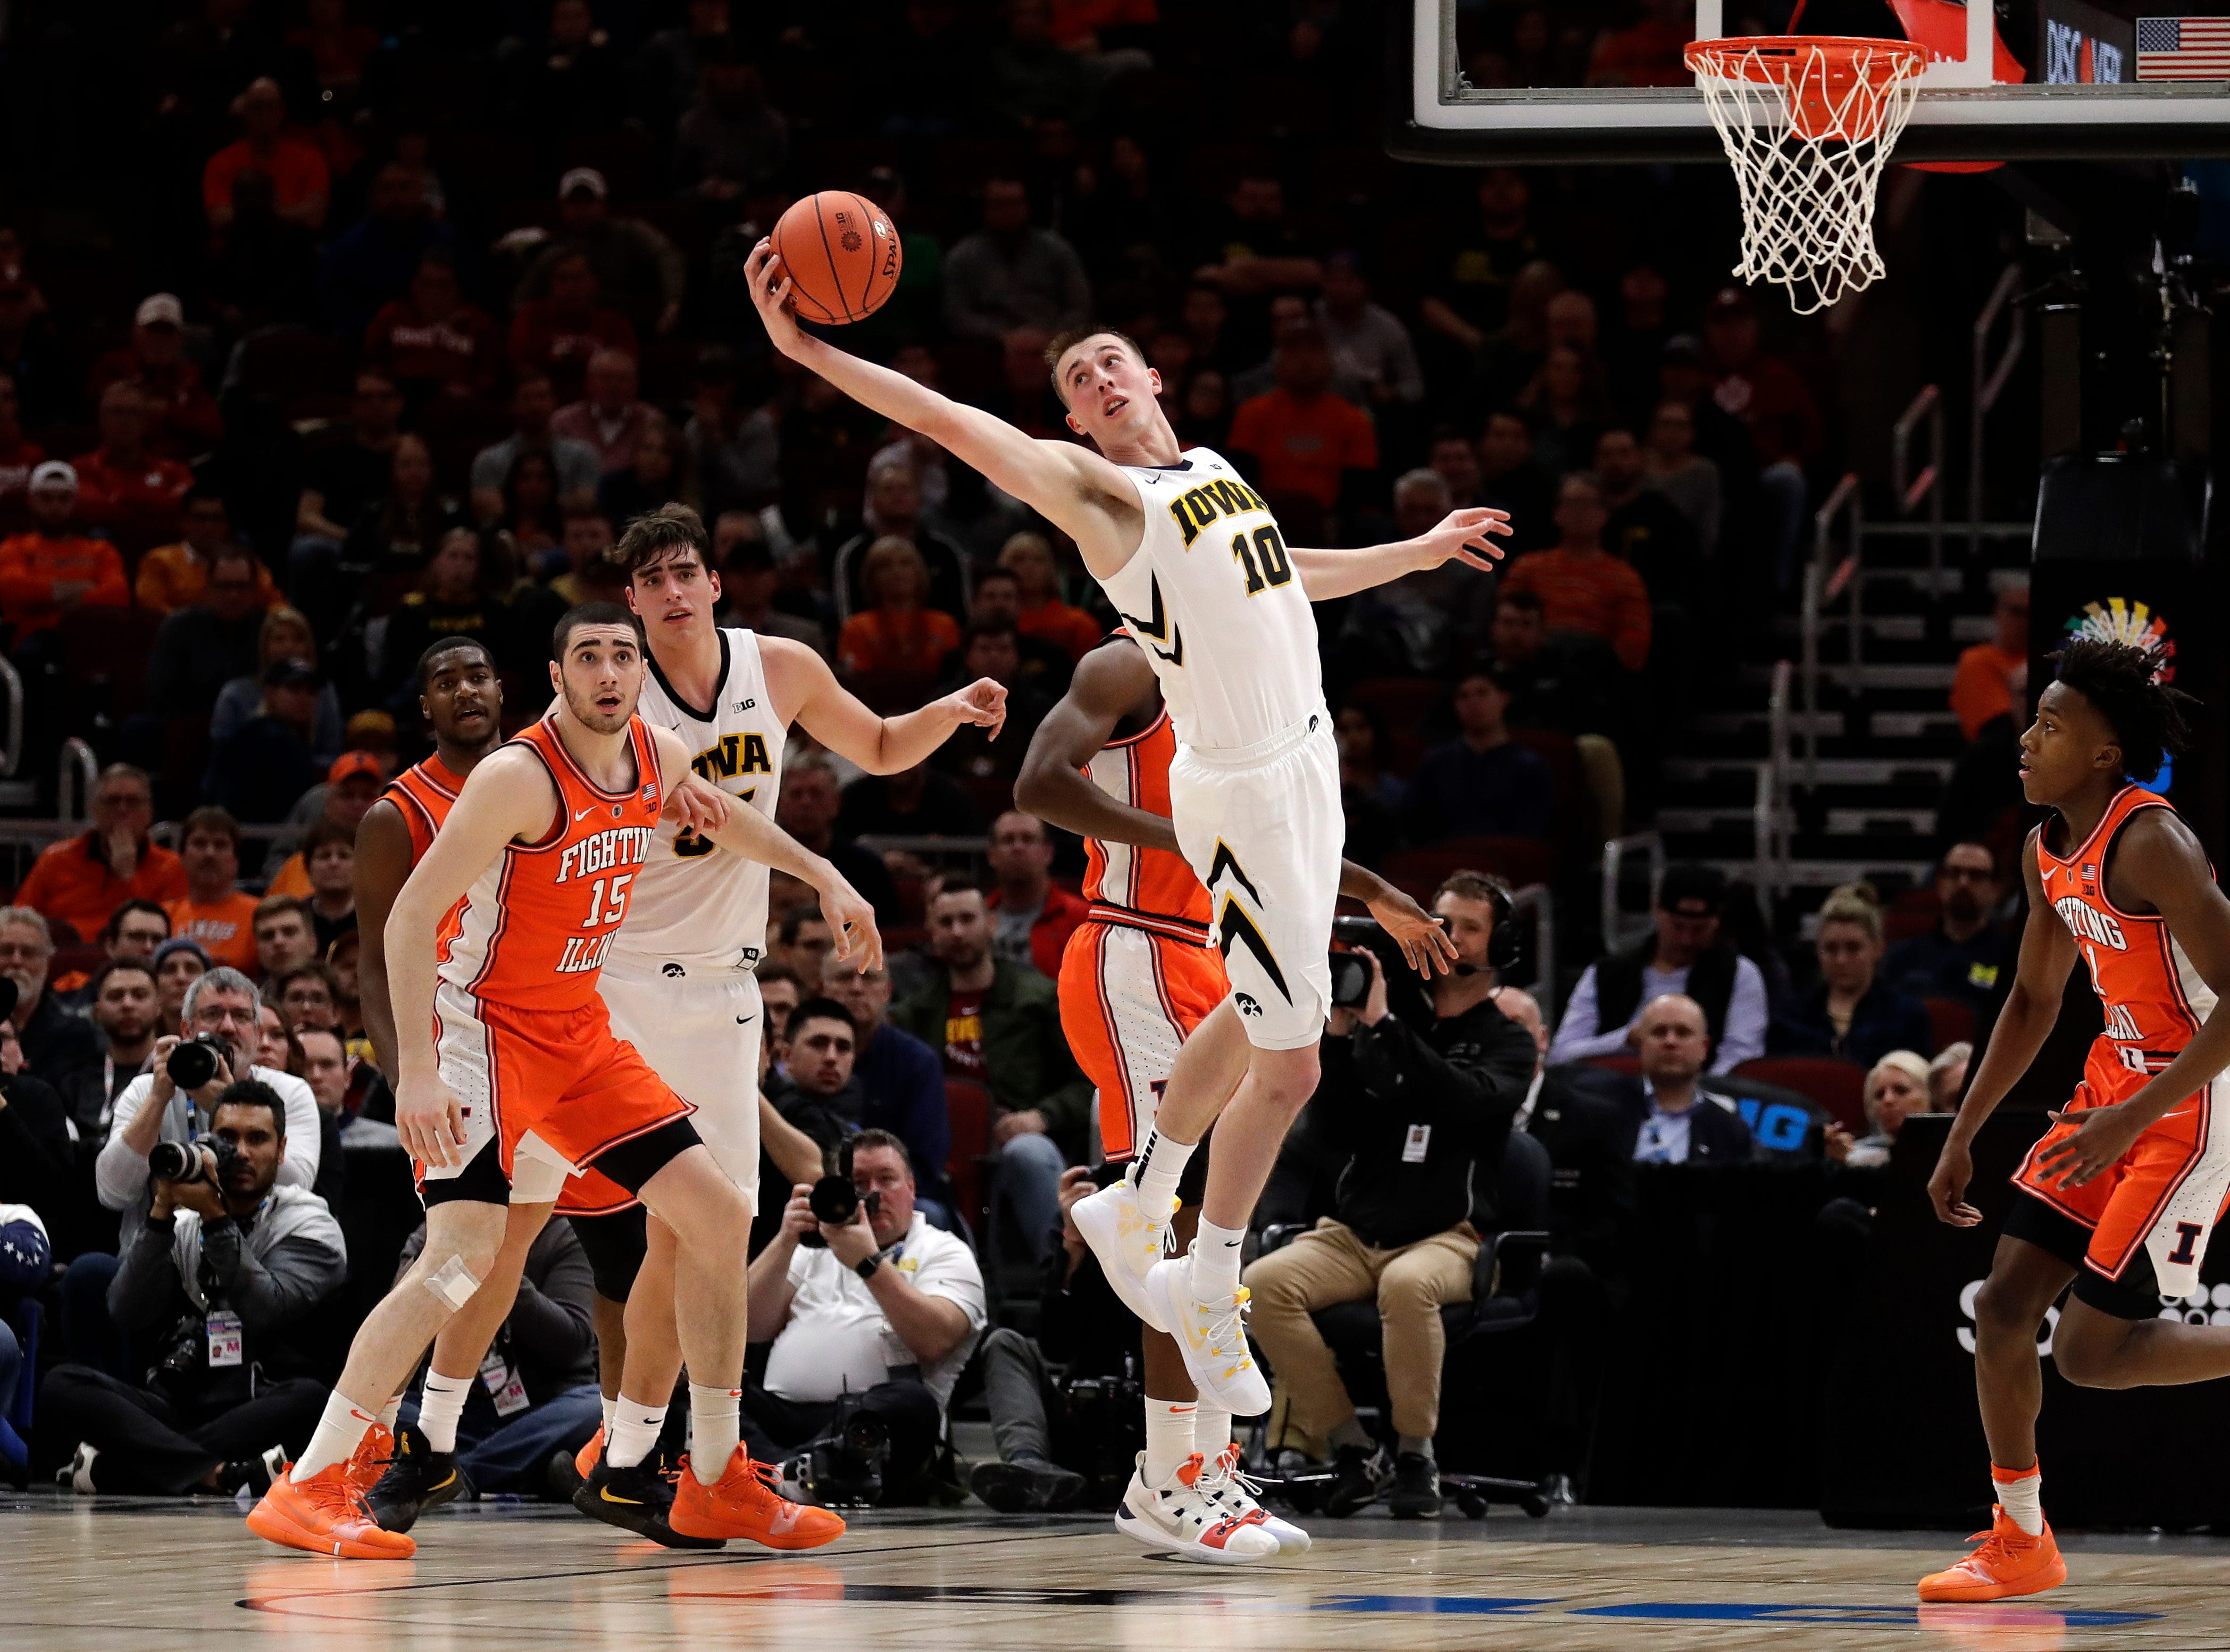 Iowa's Joe Wieskamp (10) reaches for a rebound during the first half of an NCAA college basketball game against the Illinois in the second round of the Big Ten Conference tournament, Thursday, March 14, 2019, in Chicago. (AP Photo/Nam Y. Huh)